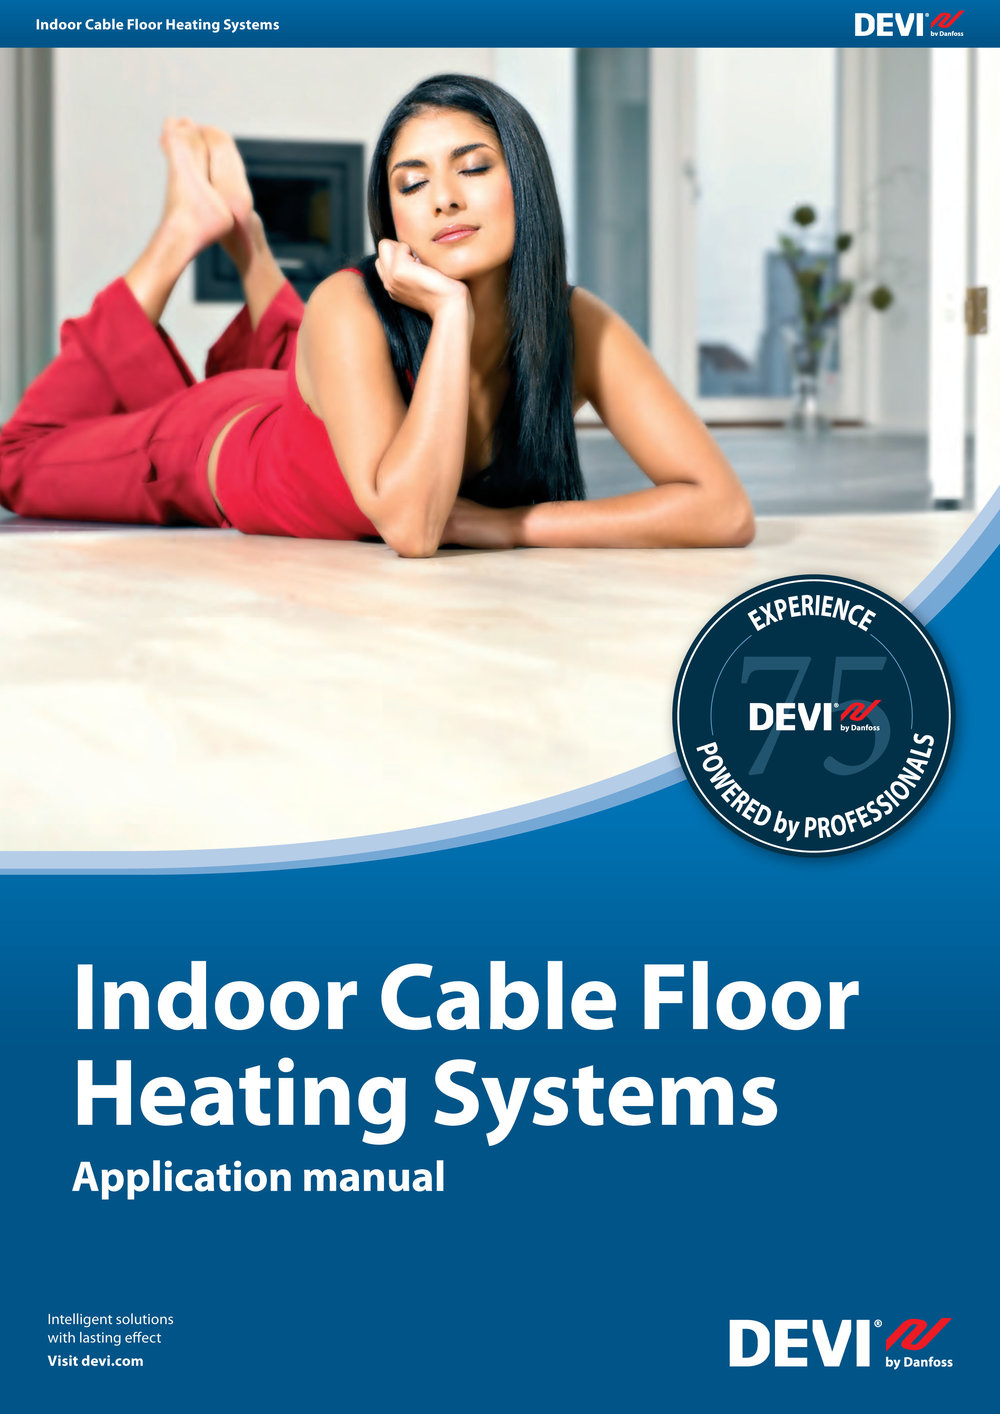 Devi Heating Mat Brochure Waterloo Bathrooms Dublin-1.jpg